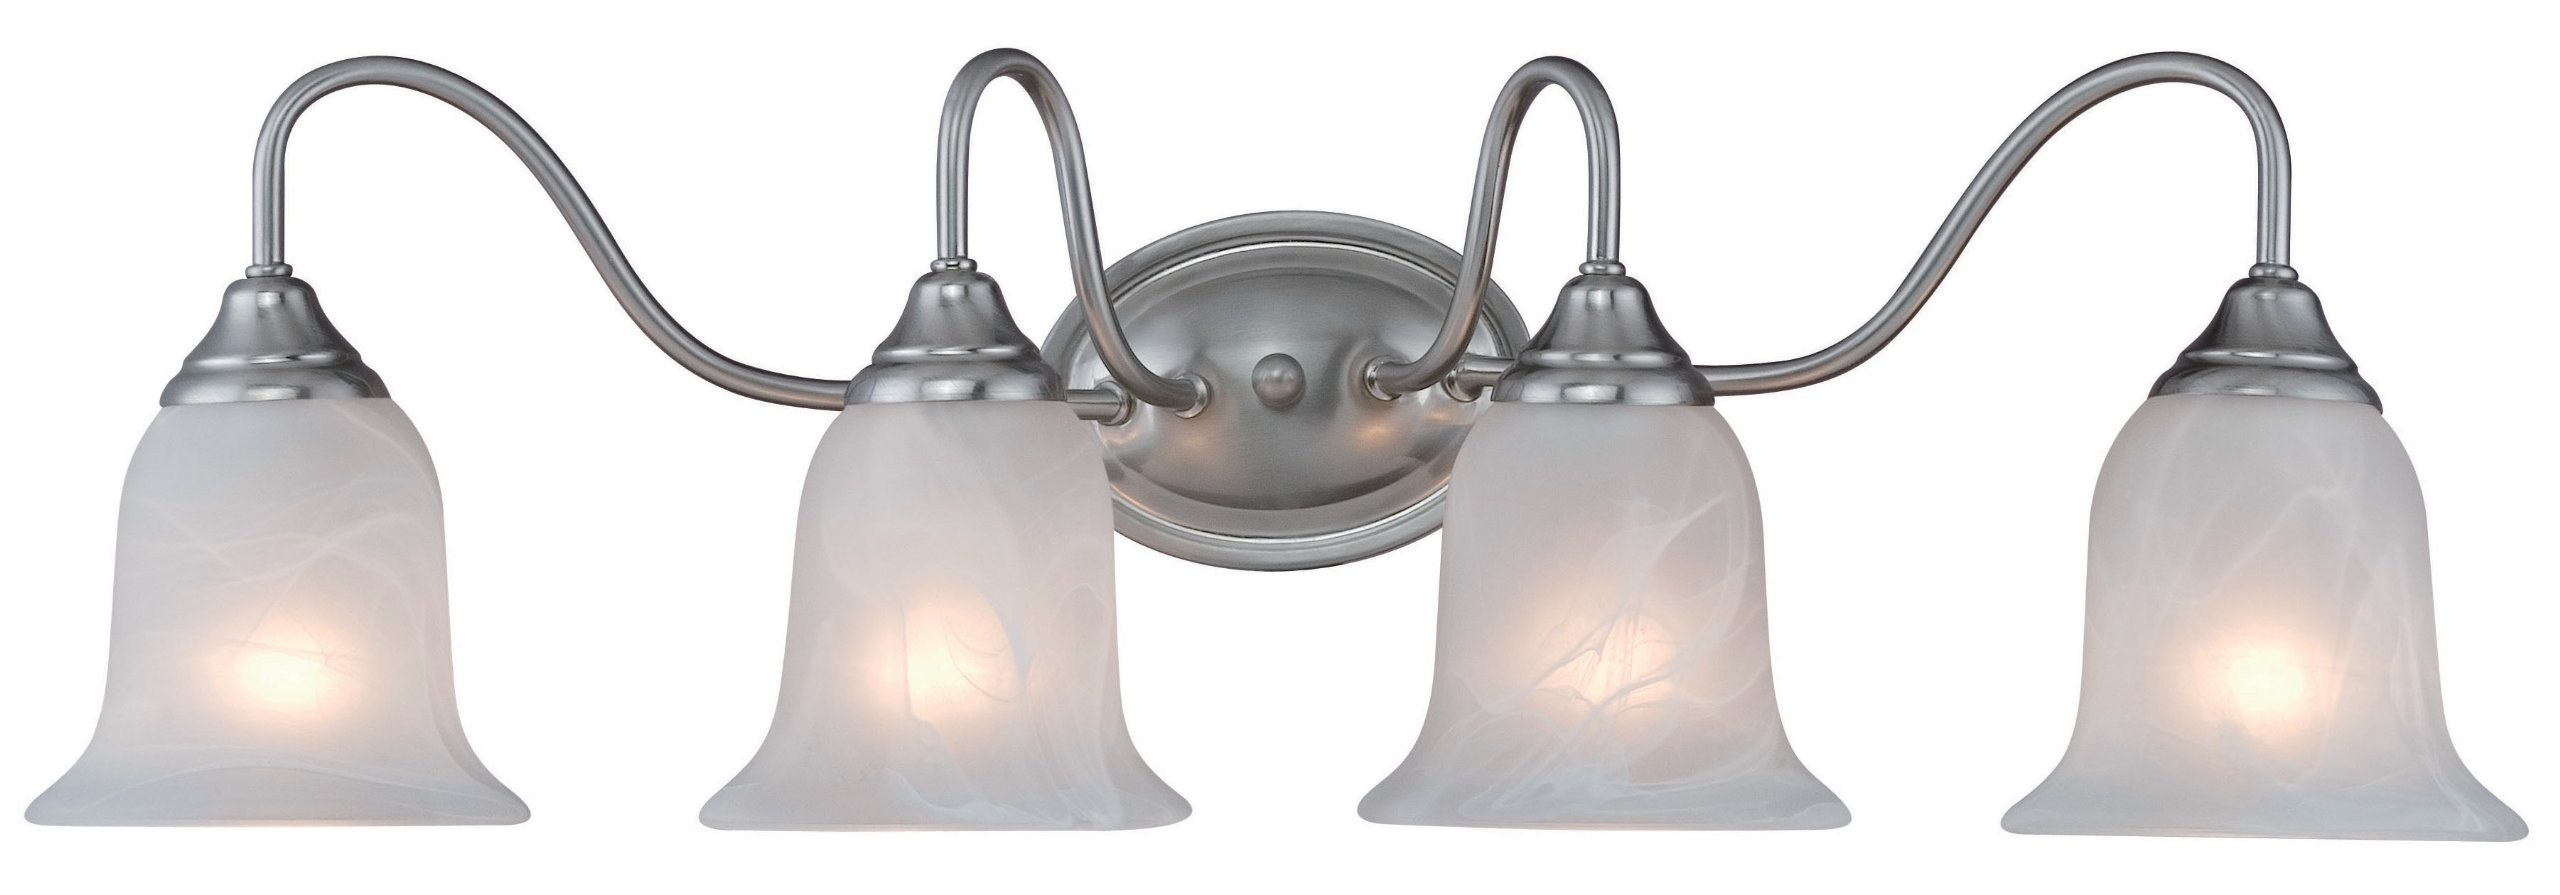 Hardware House H10-2469 Saturn 4-Light Bath or Wall Fixture, Satin Nickel